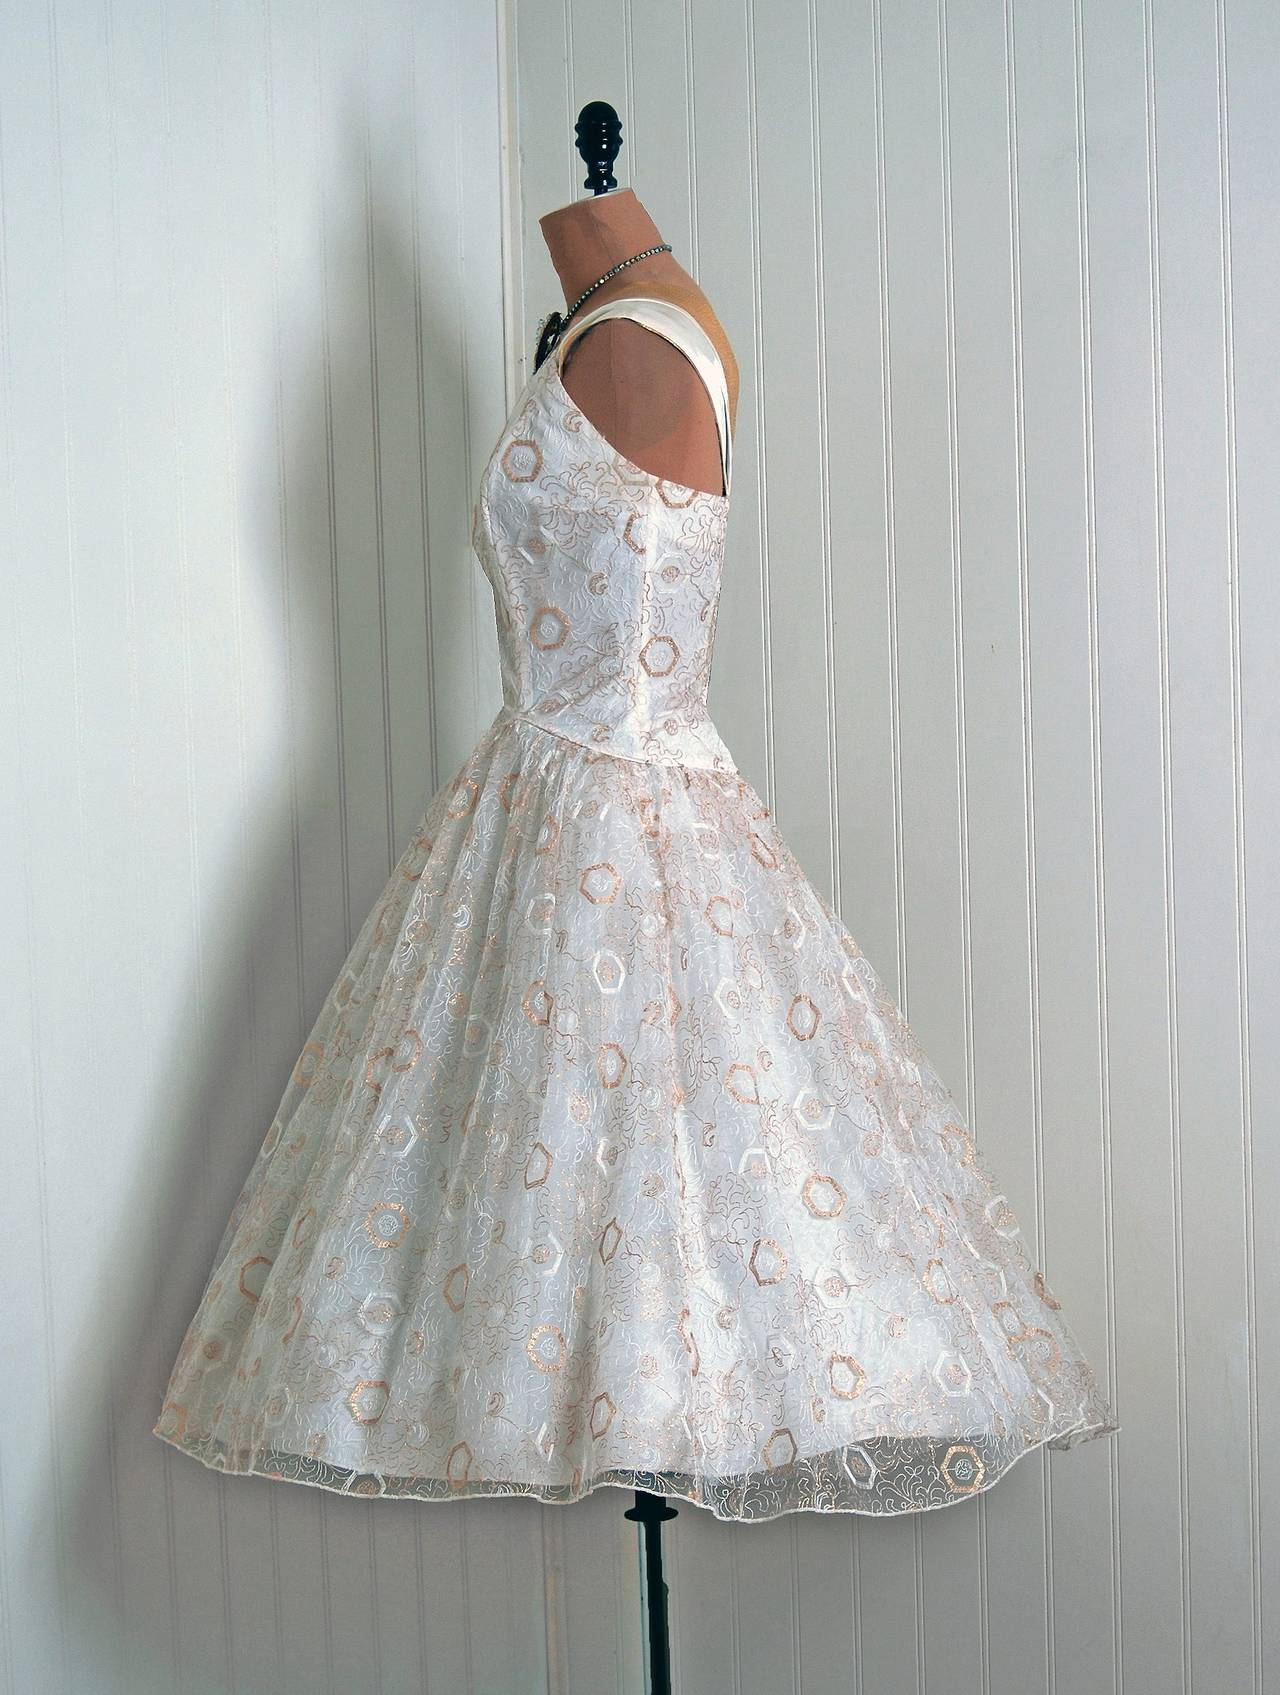 1950's Emma Domb White & Gold Embroidered Tulle One-Shoulder Party Dress 4